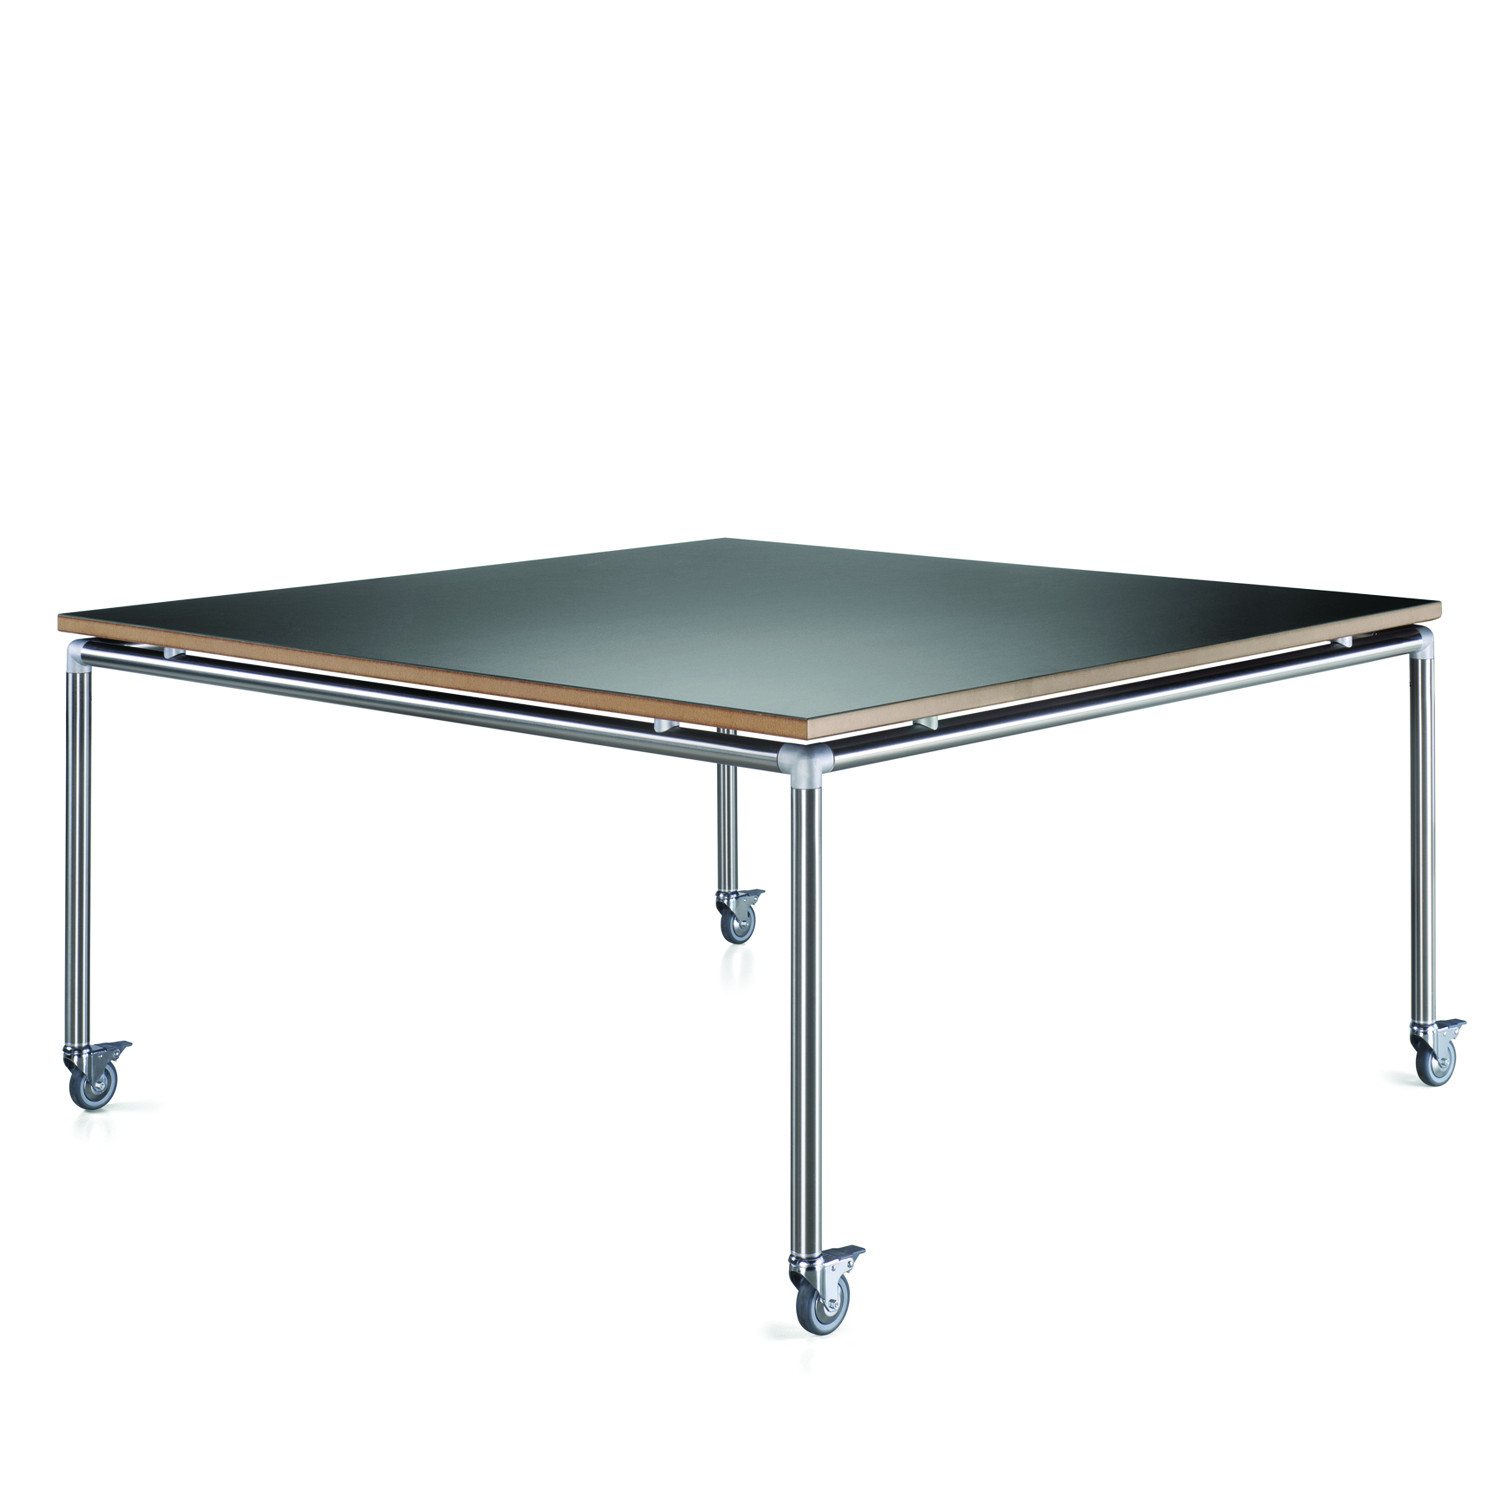 Move-it Swivel Table